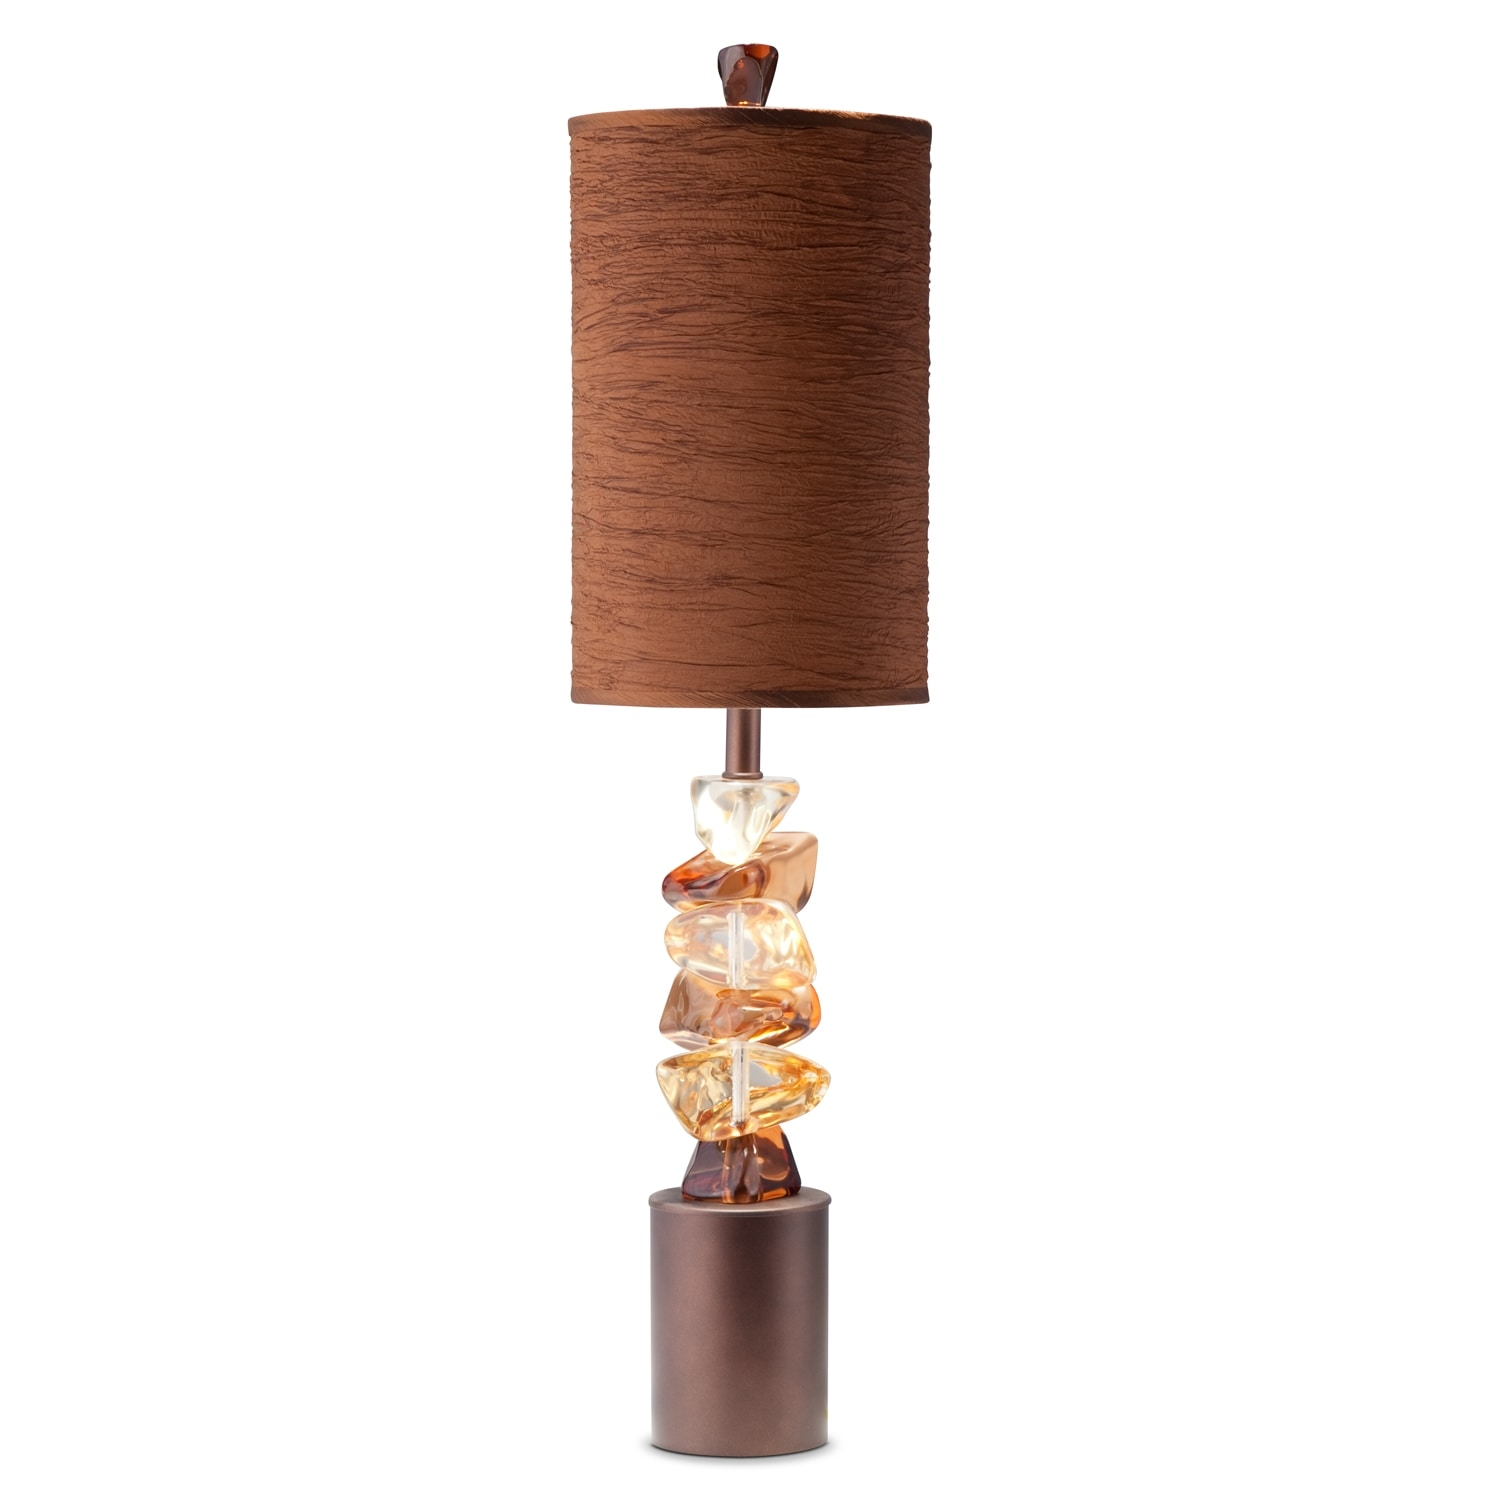 Home Accessories - River Rock Table Lamp